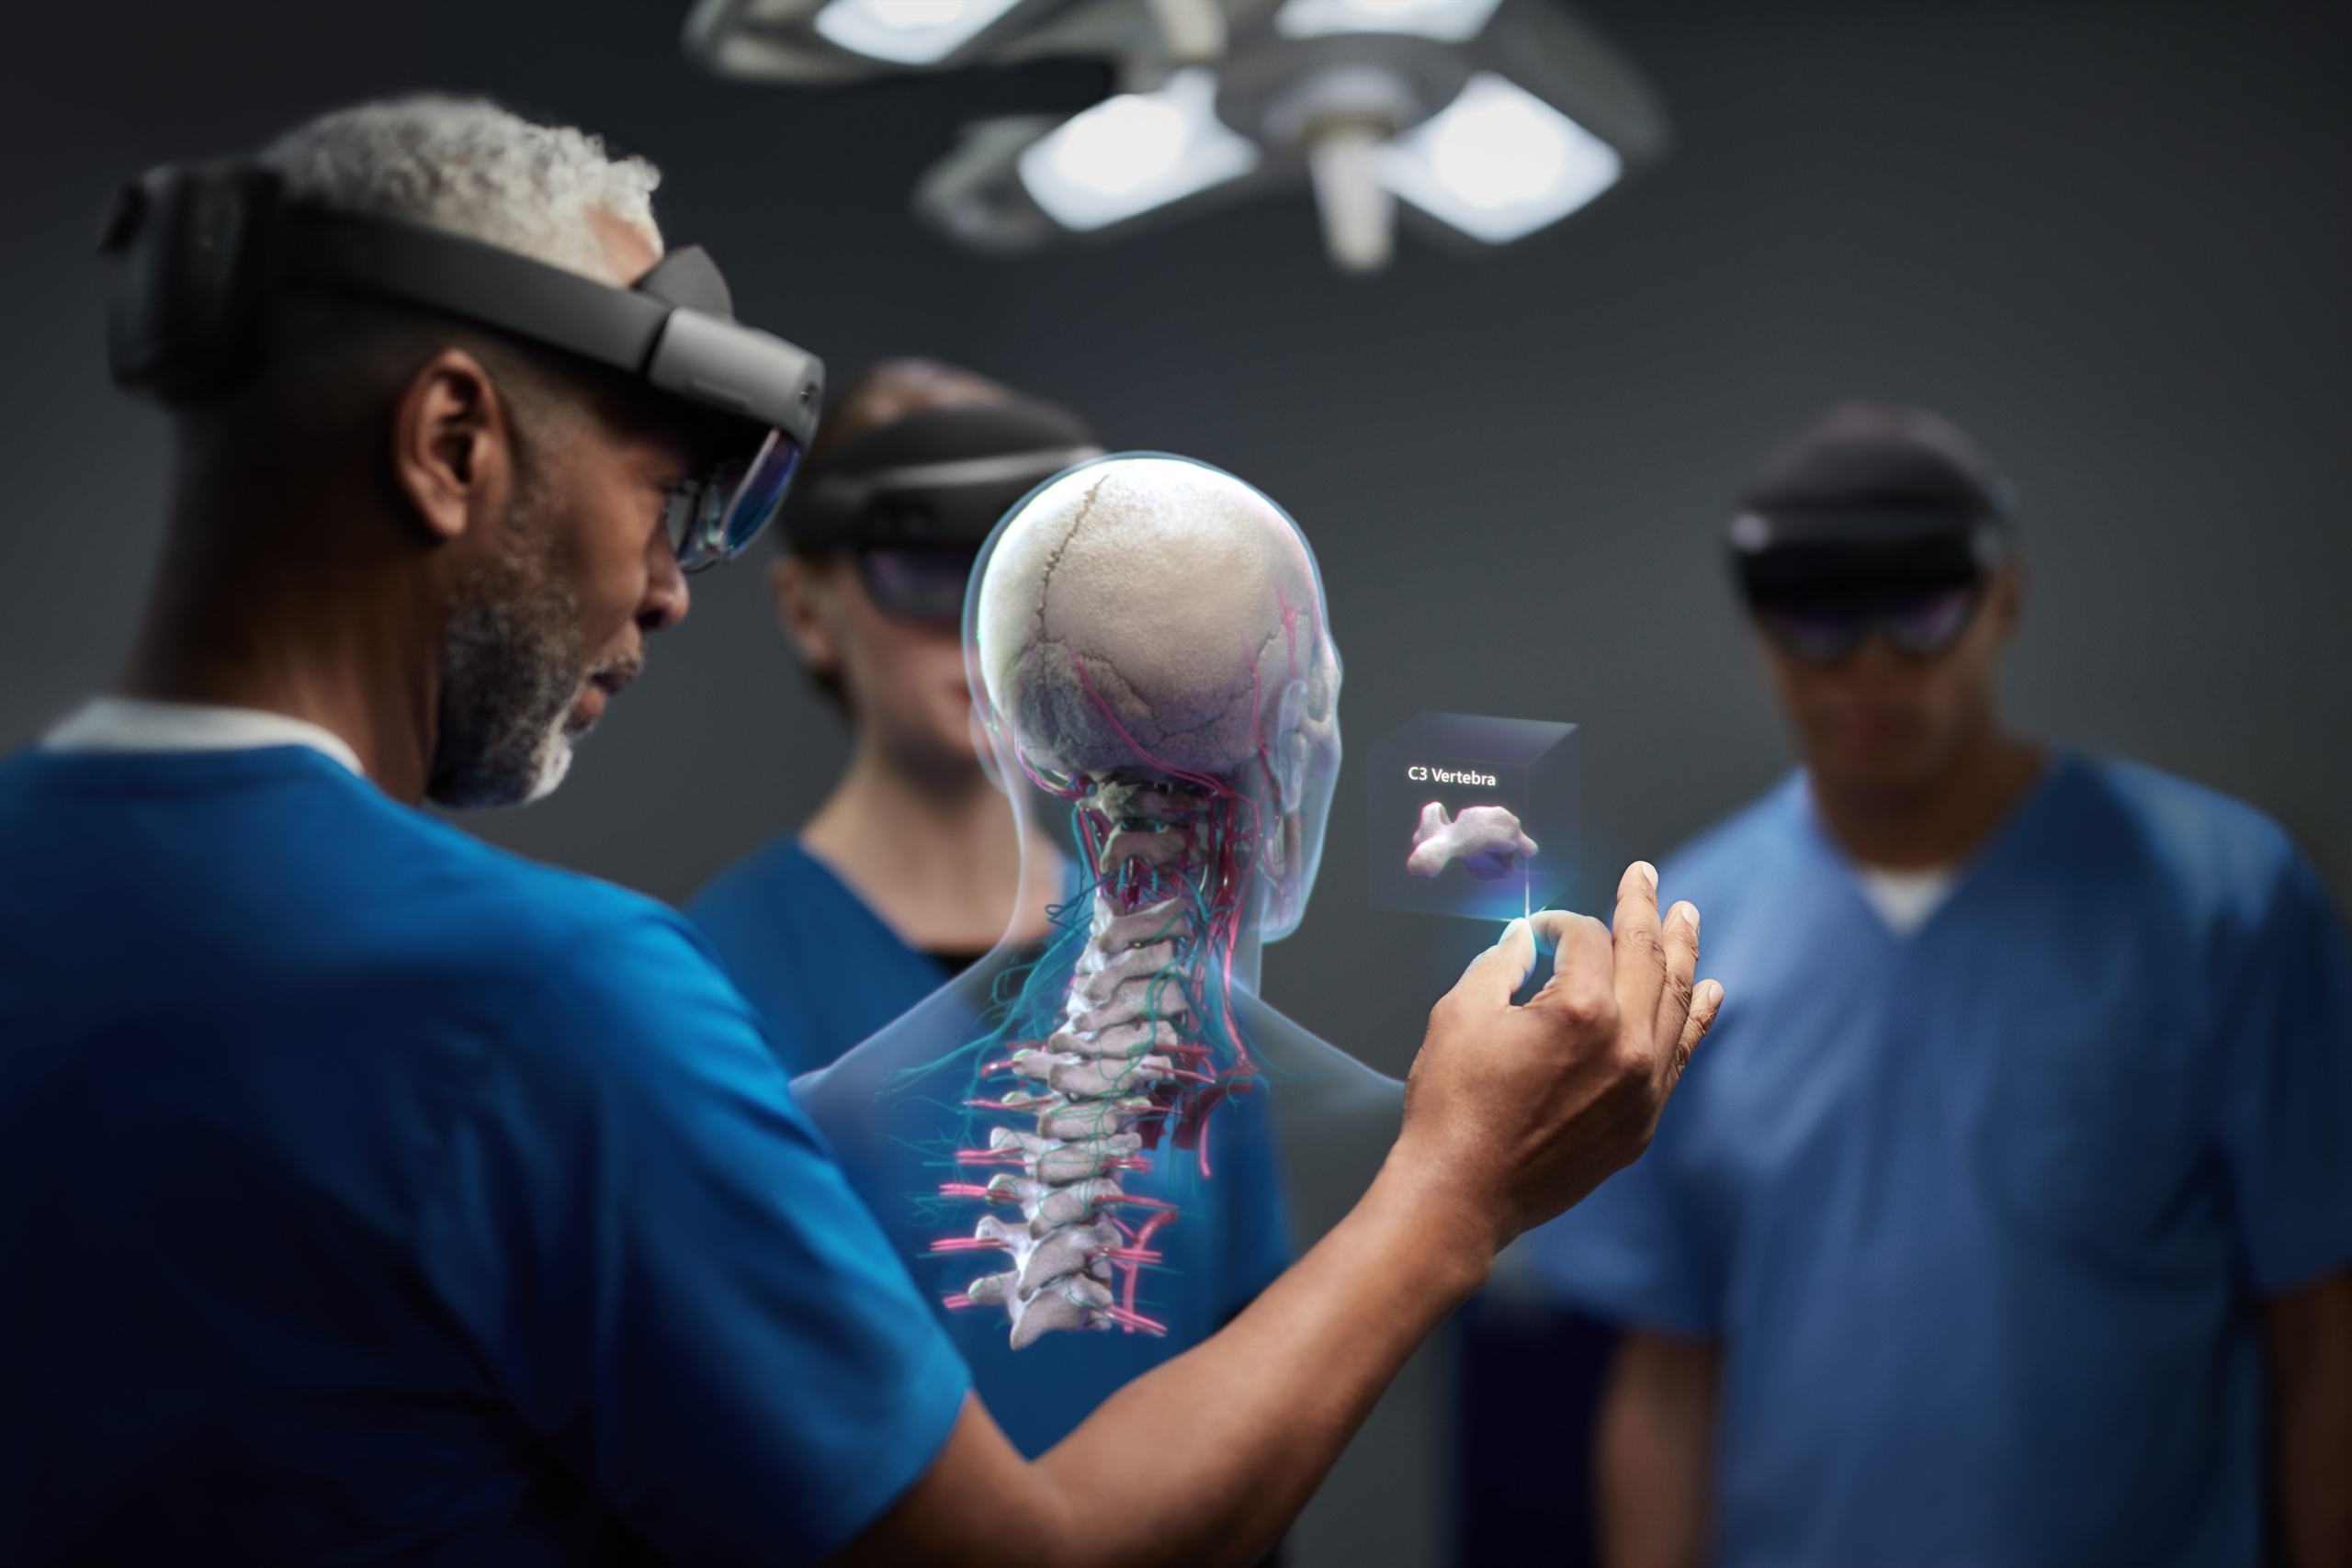 Surgeon and medical team, using HoloLens 2 to assist in an operating theatre.